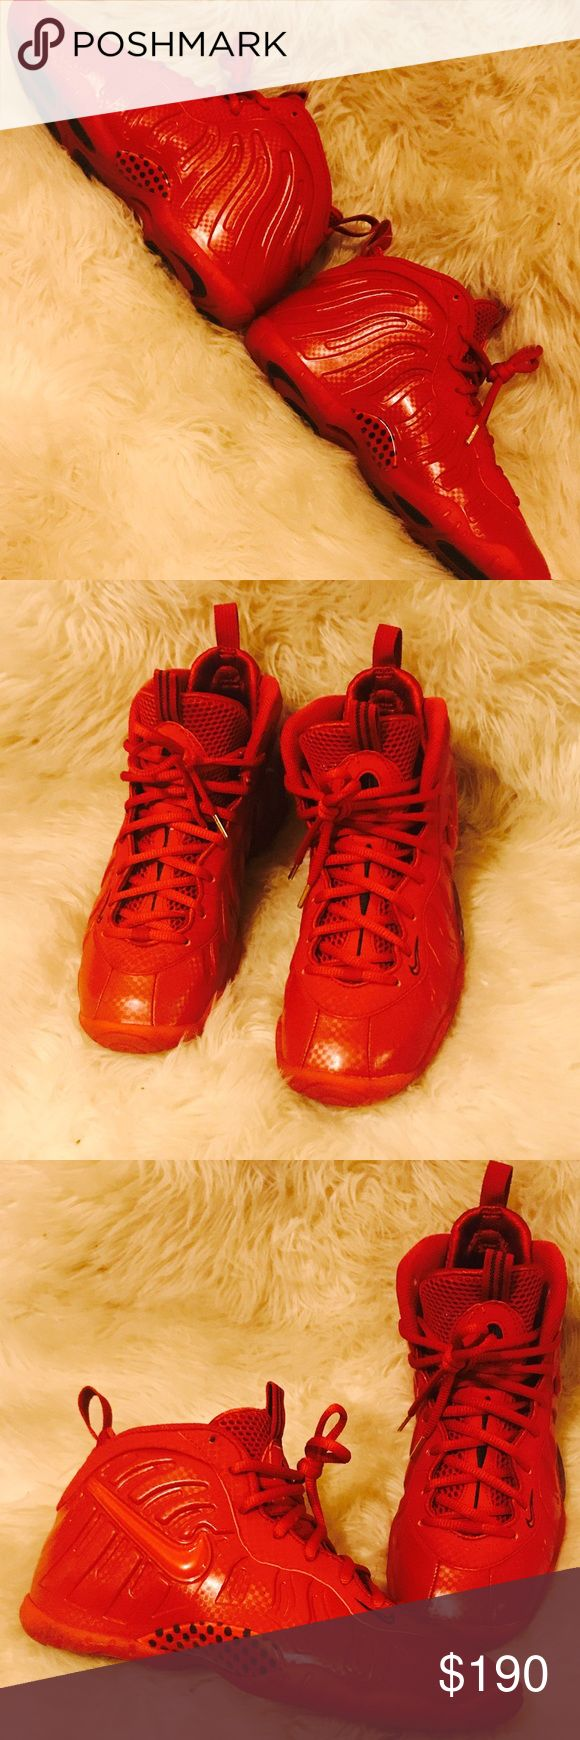 All Red Foamposites Re Posh , They Are Great Condition Just Too Tight For My Foot ! They Are Grade School Size & Rare To Come By Nike Shoes Sneakers